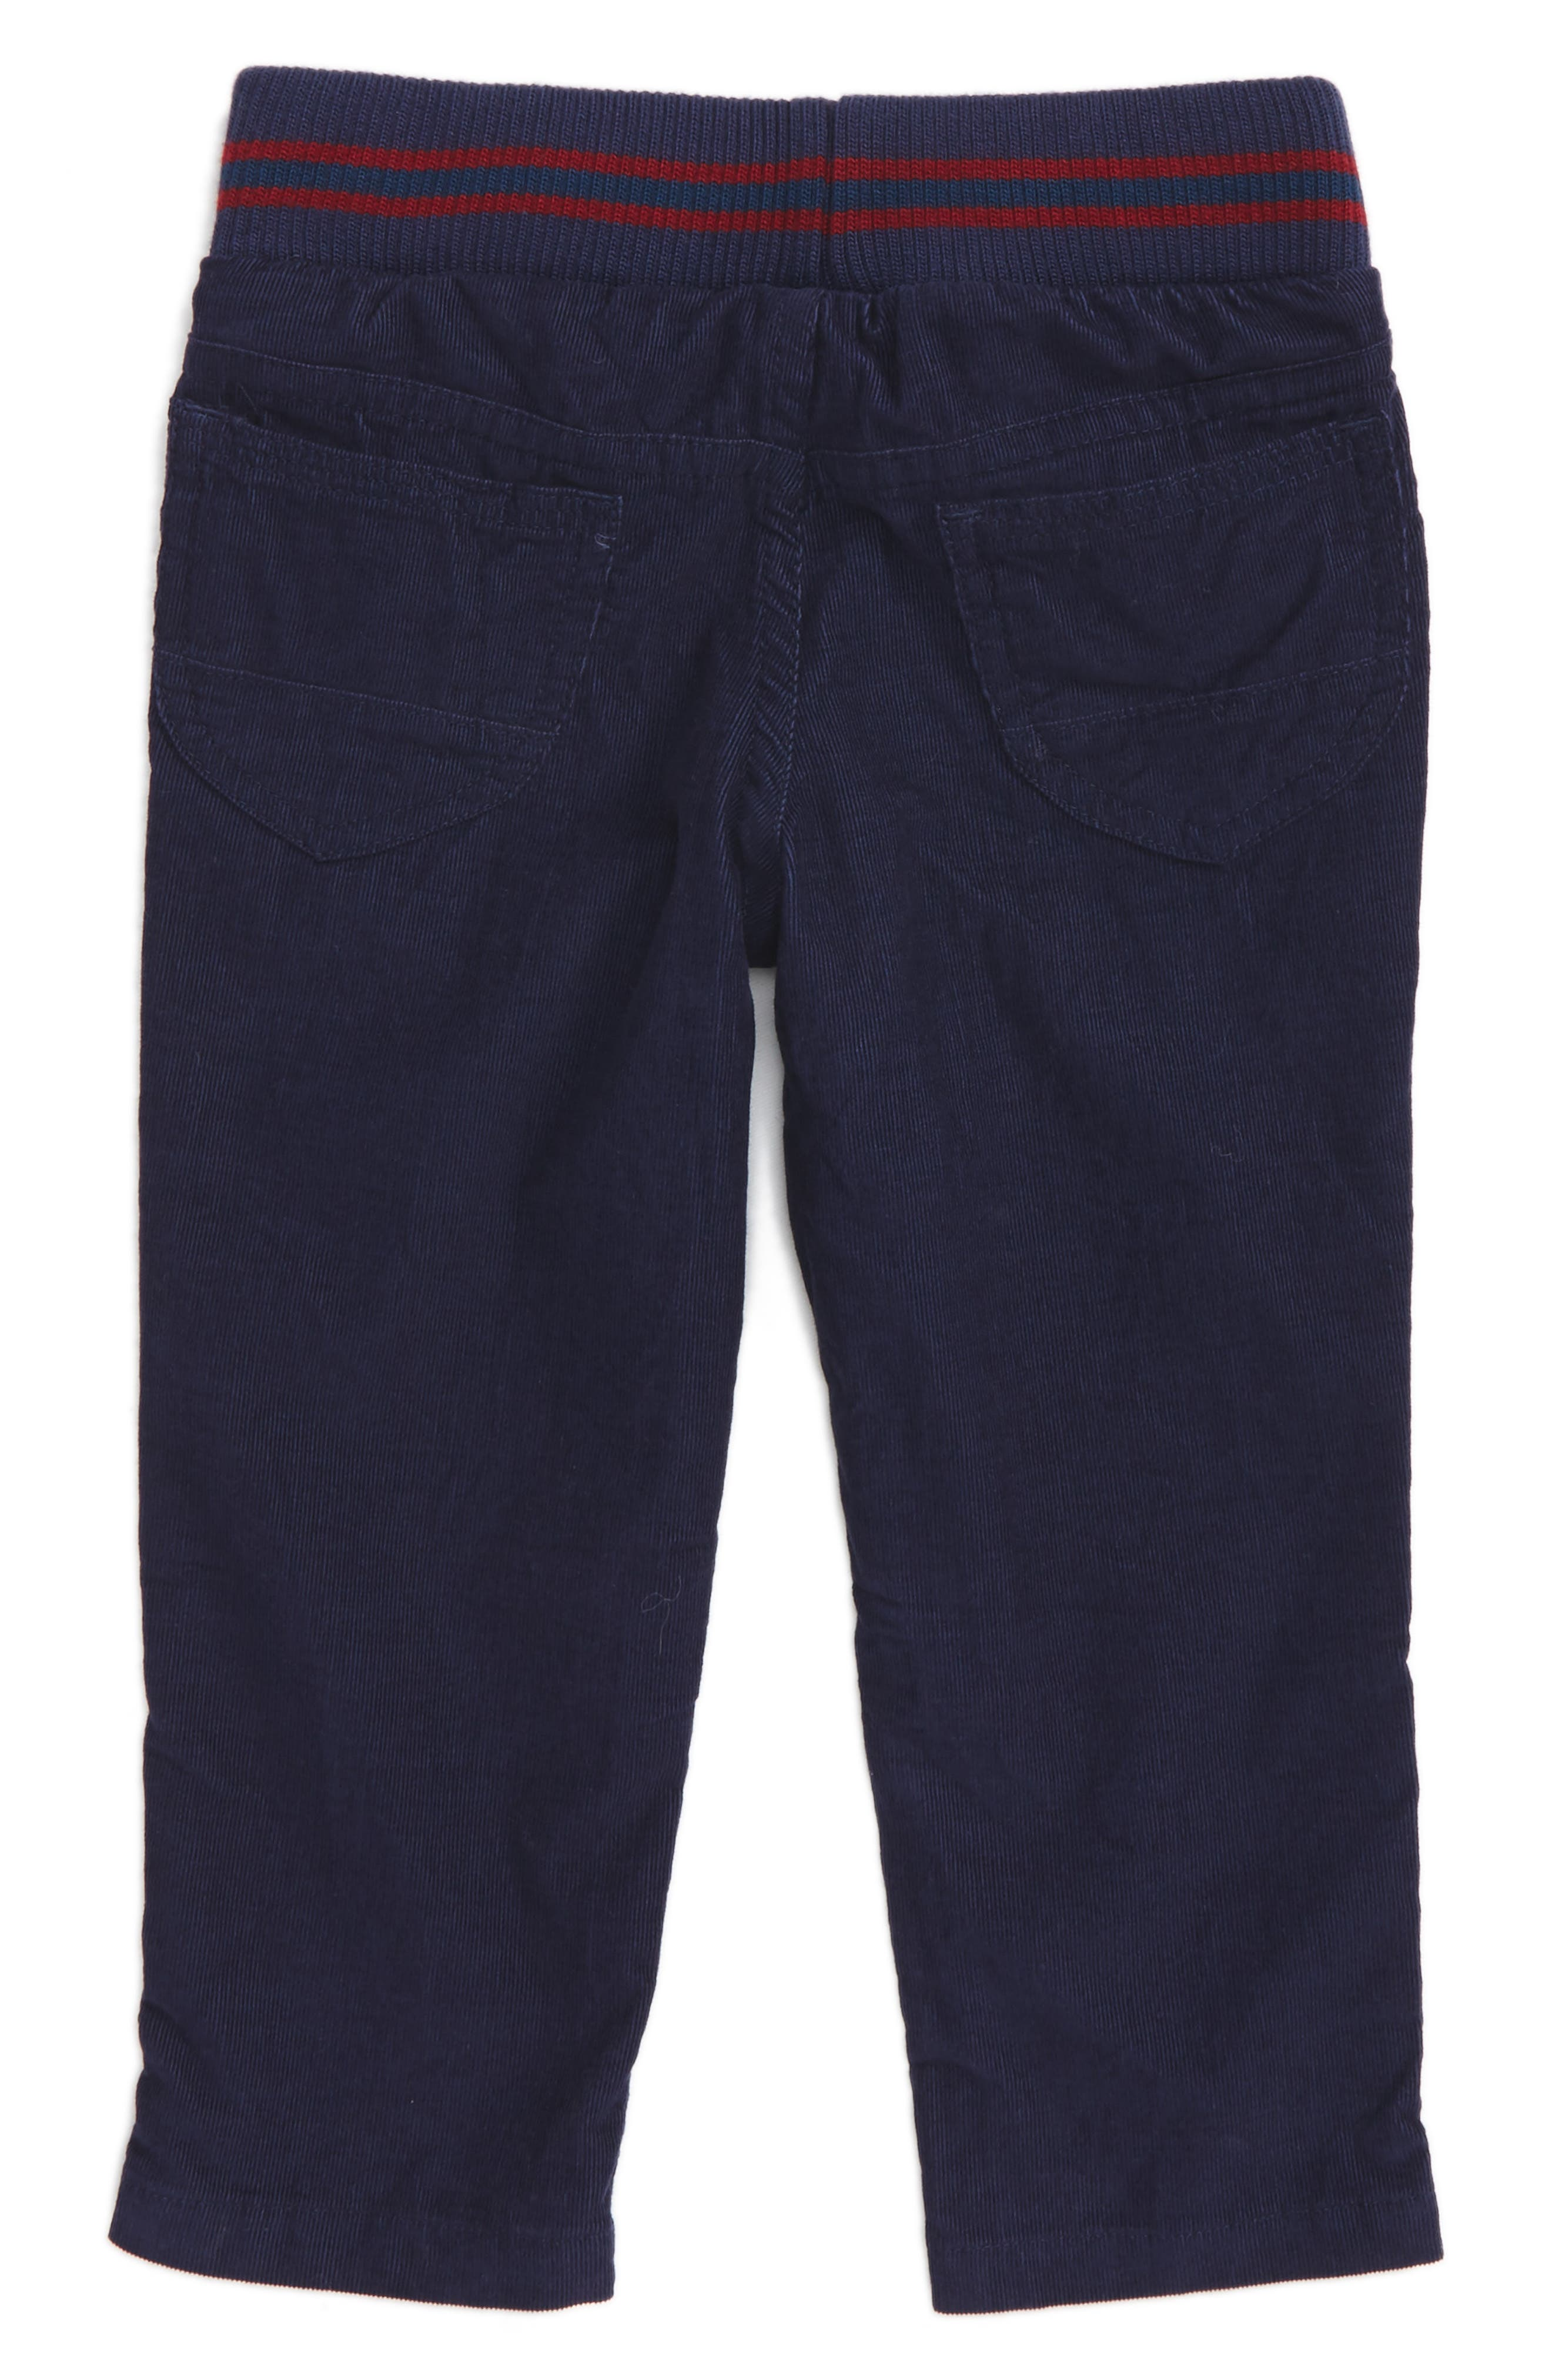 Ethan Corduroy Pants,                             Alternate thumbnail 2, color,                             410